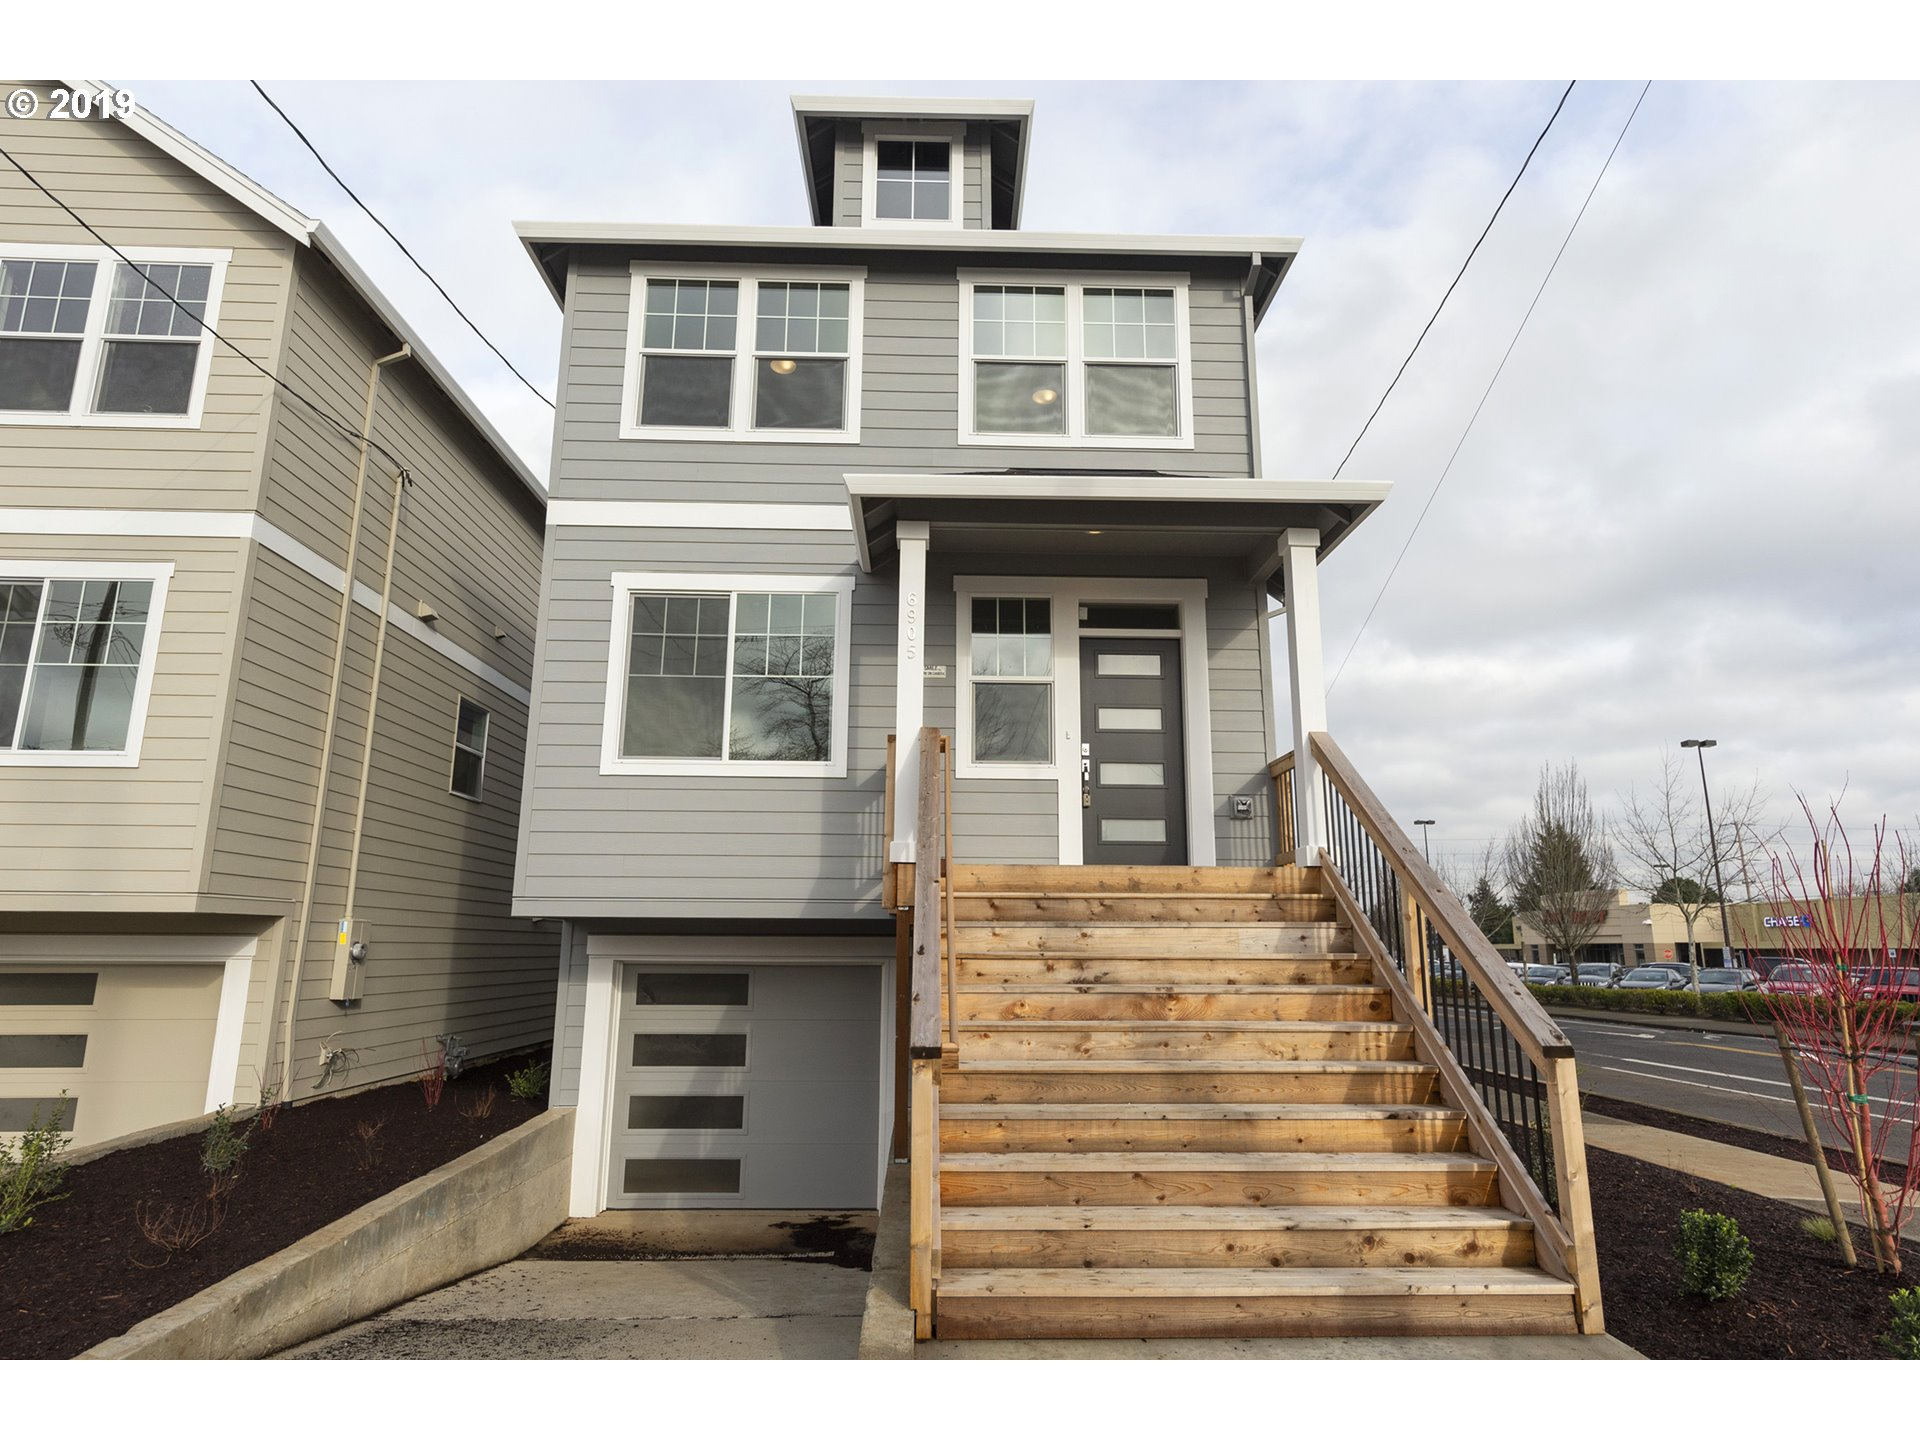 Photo for 6905 N JERSEY ST, Portland, OR 97203 (MLS # 19490217)